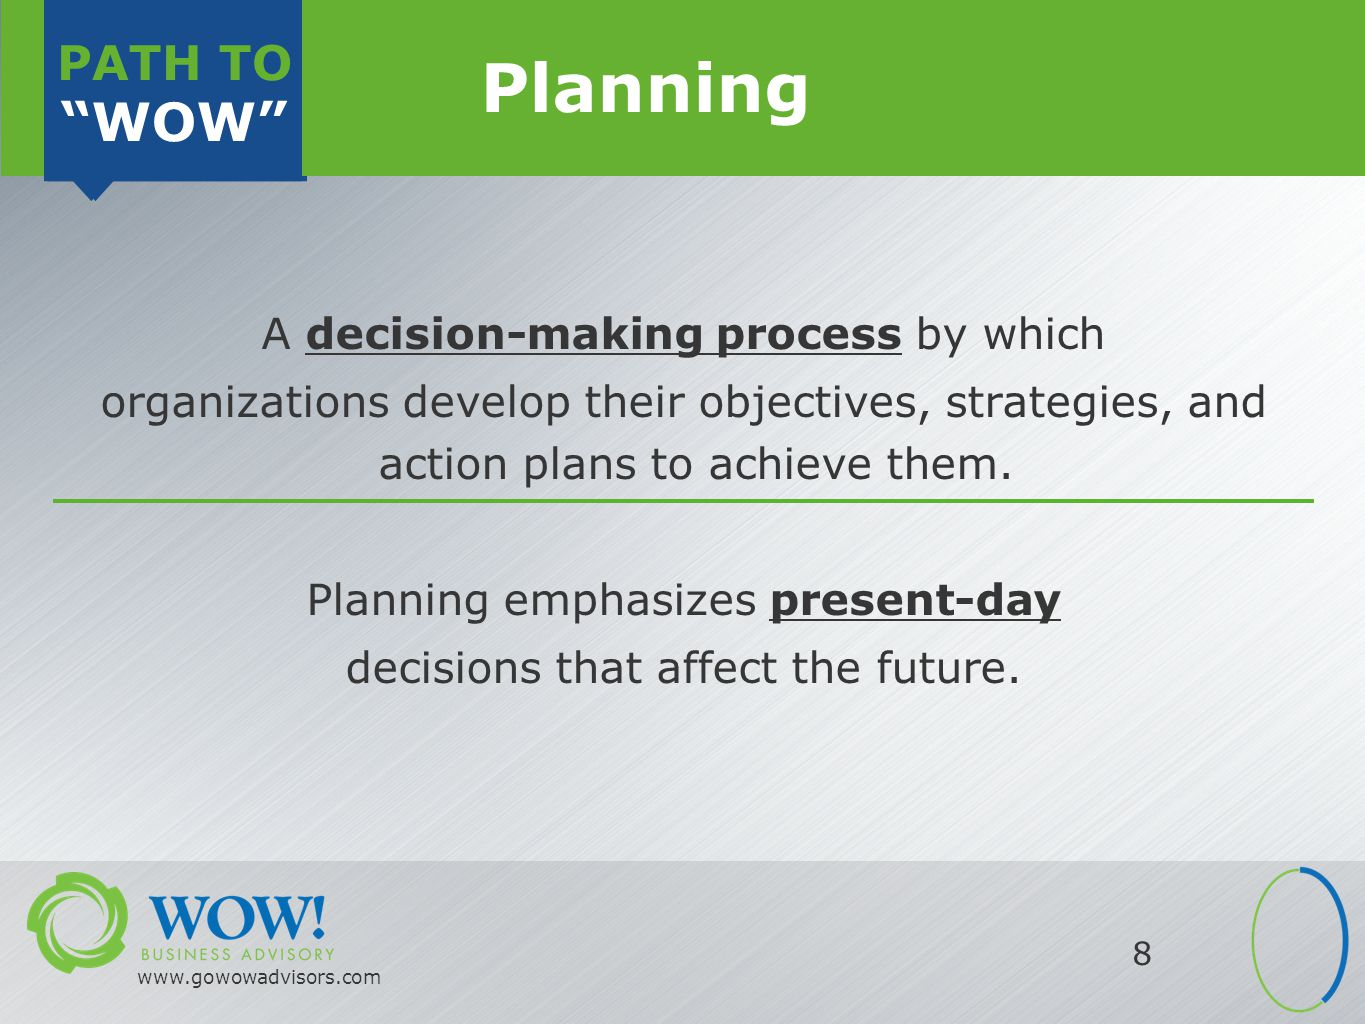 PATH TO WOW PATH TO WOW www.gowowadvisors.com 8 Planning A decision-making process by which organizations develop their objectives, strategies, and action plans to achieve them.